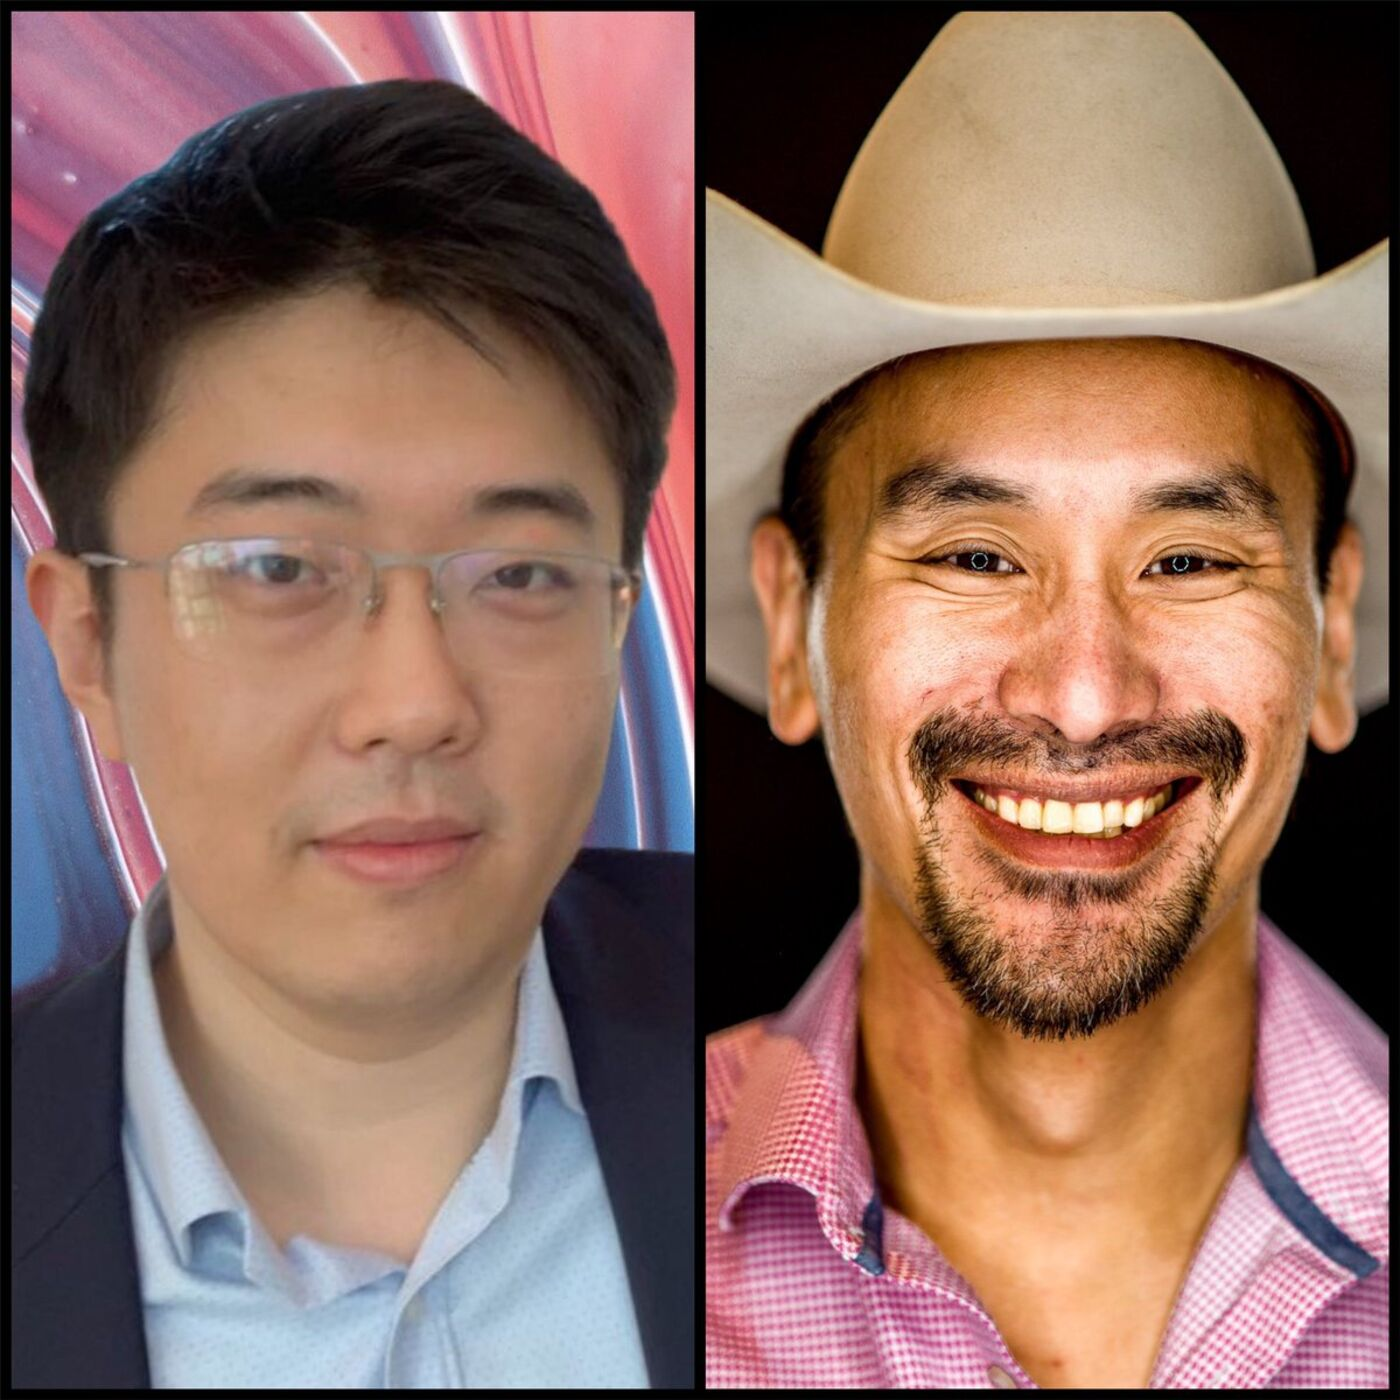 Motion: Corporate bailouts and capital market rescues make sense (Qiao Wang vs. Jimmy Song)